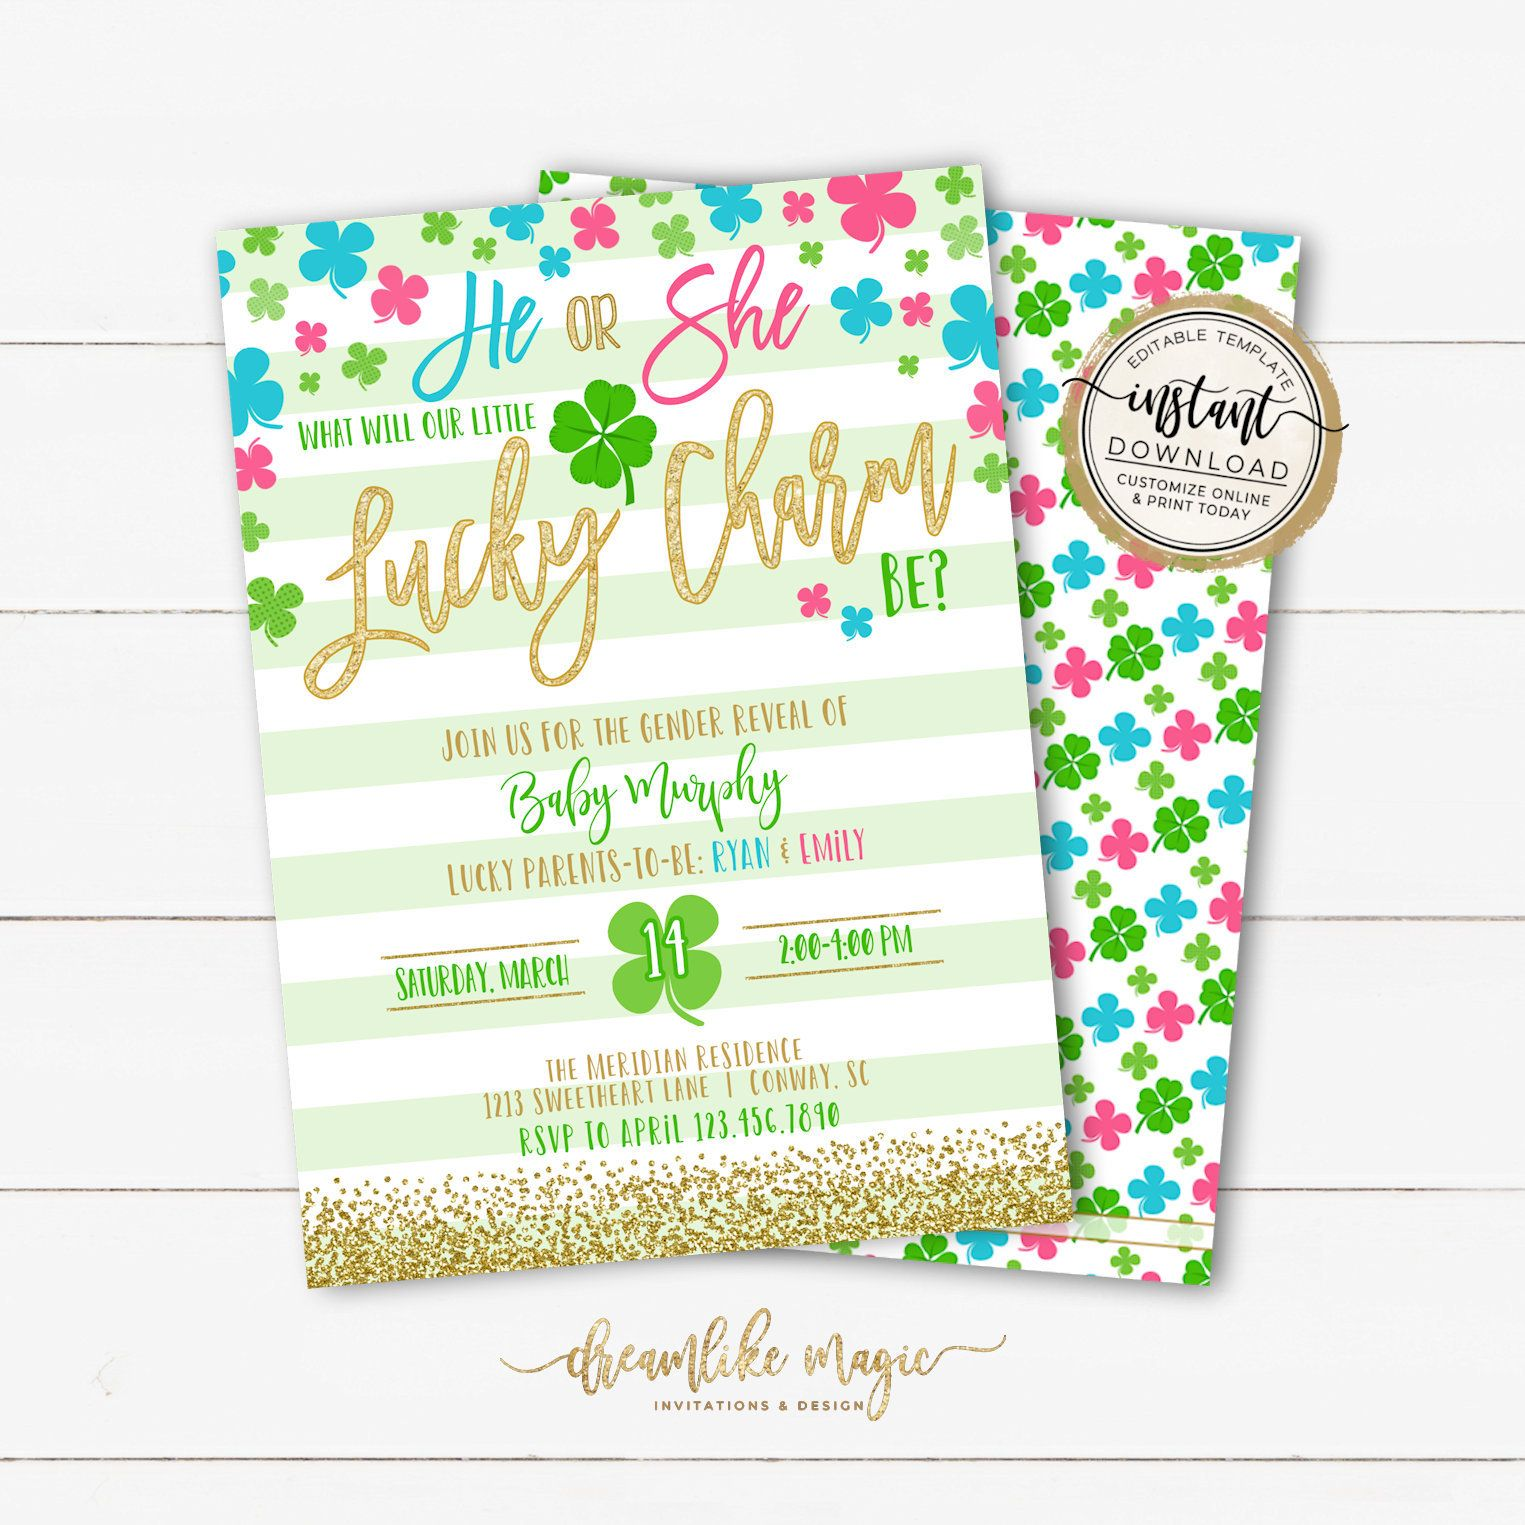 Pin By Dreamlike Magic On Gender Reveal Party Invitations Gender Reveal Invitations Gender Reveal Party Invitations Gender Reveal Party